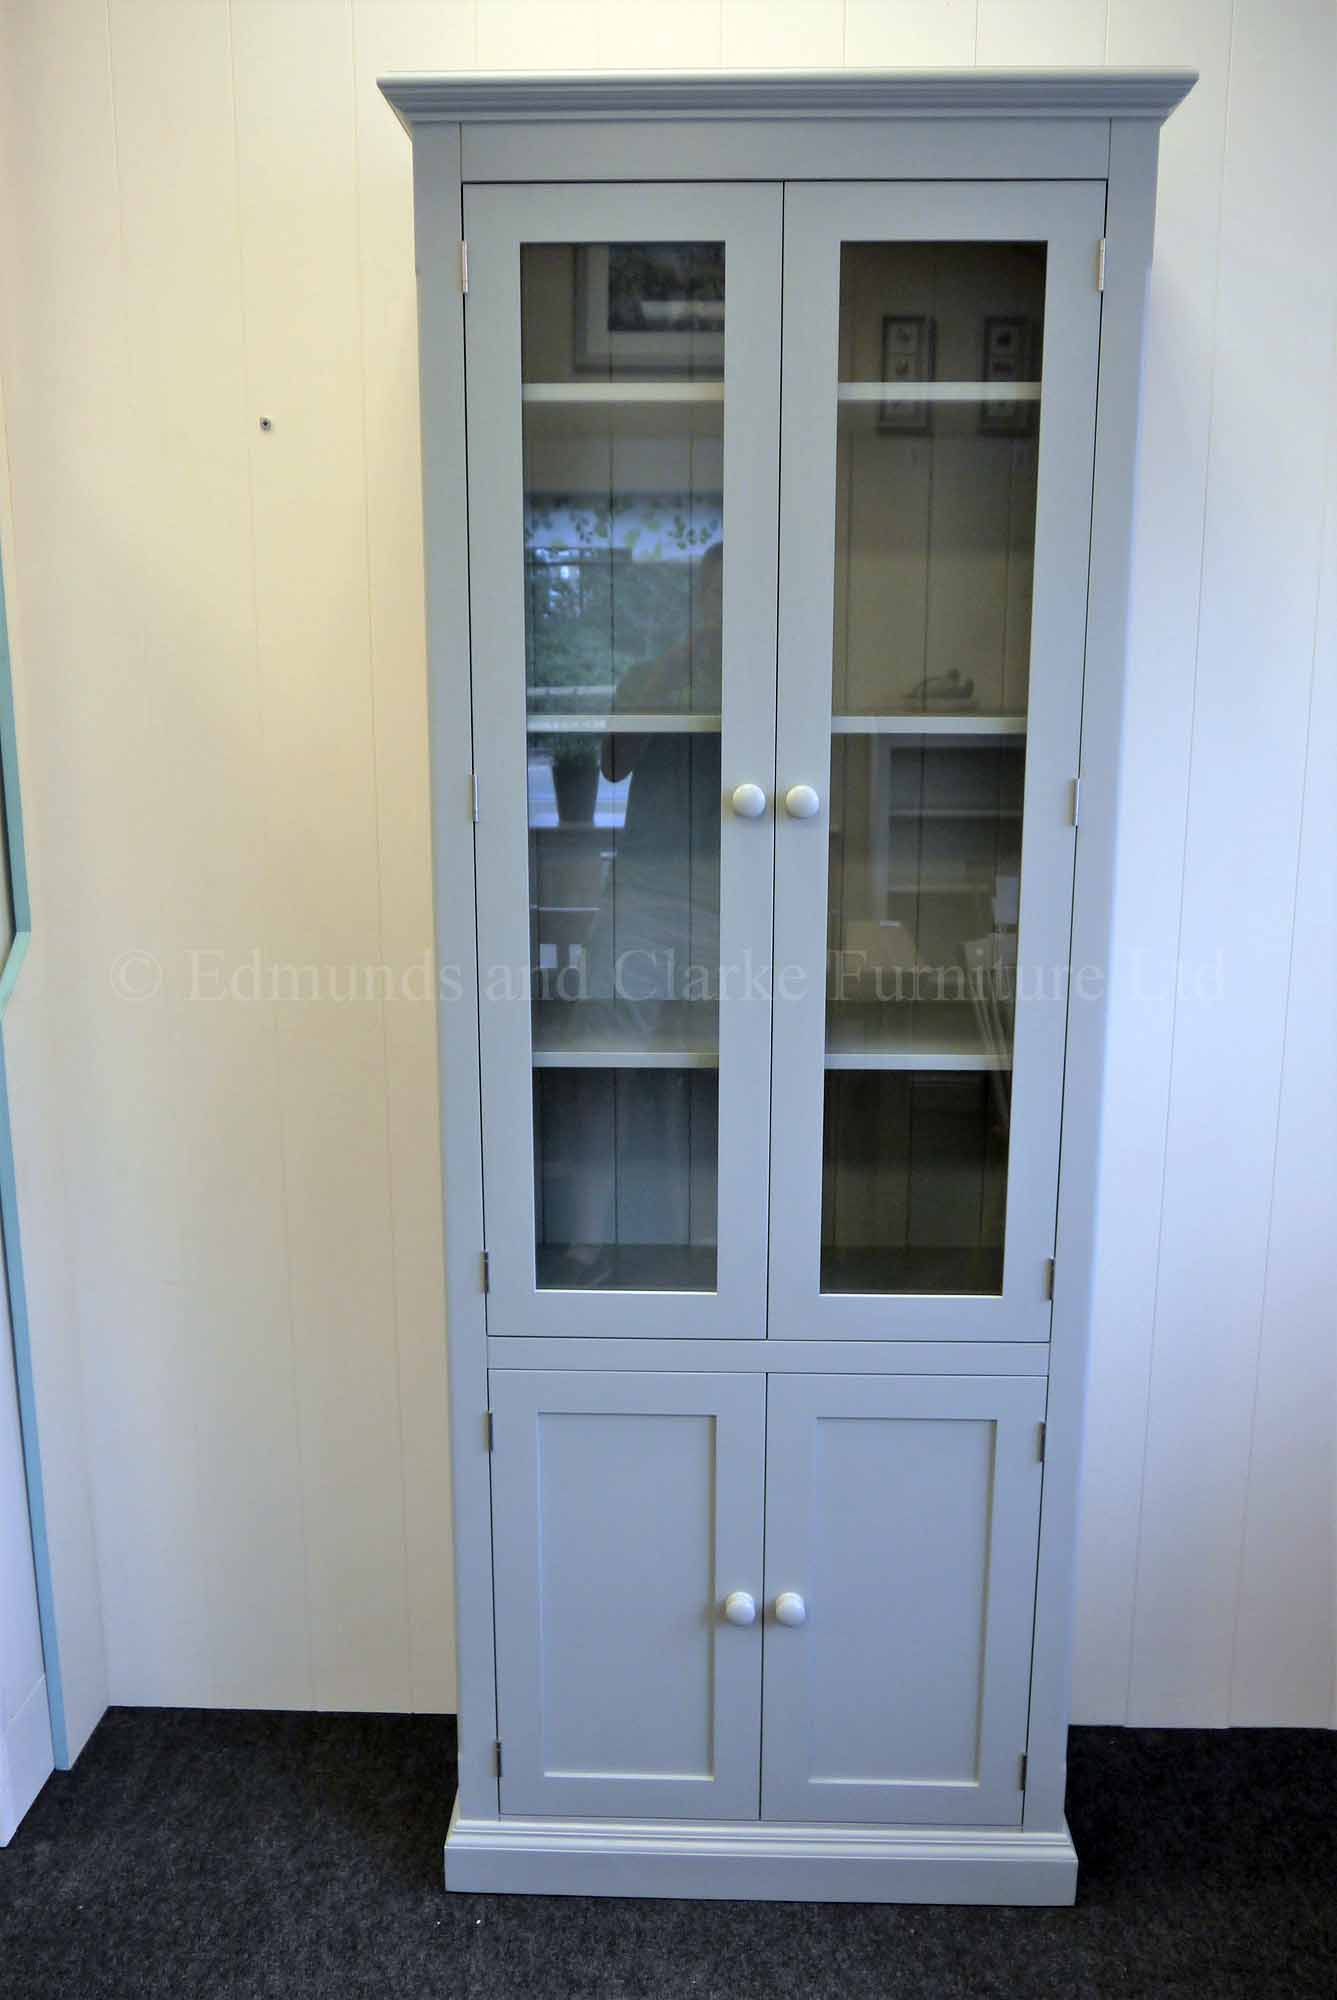 Edmunds tall narrow glazed bookcase with four doors